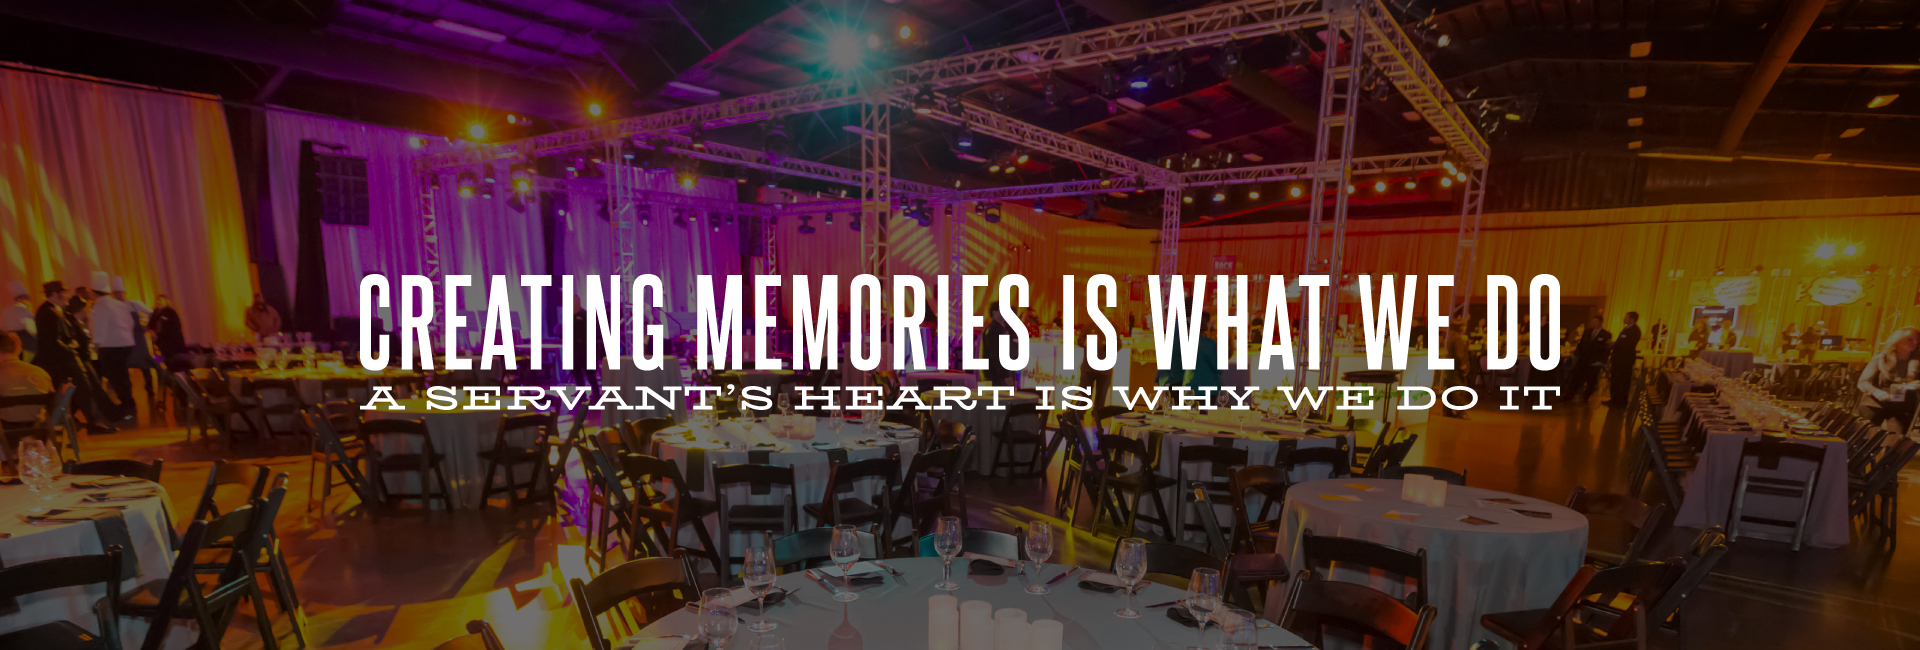 Creating Memories is what we do. A servants heart is why we do it.